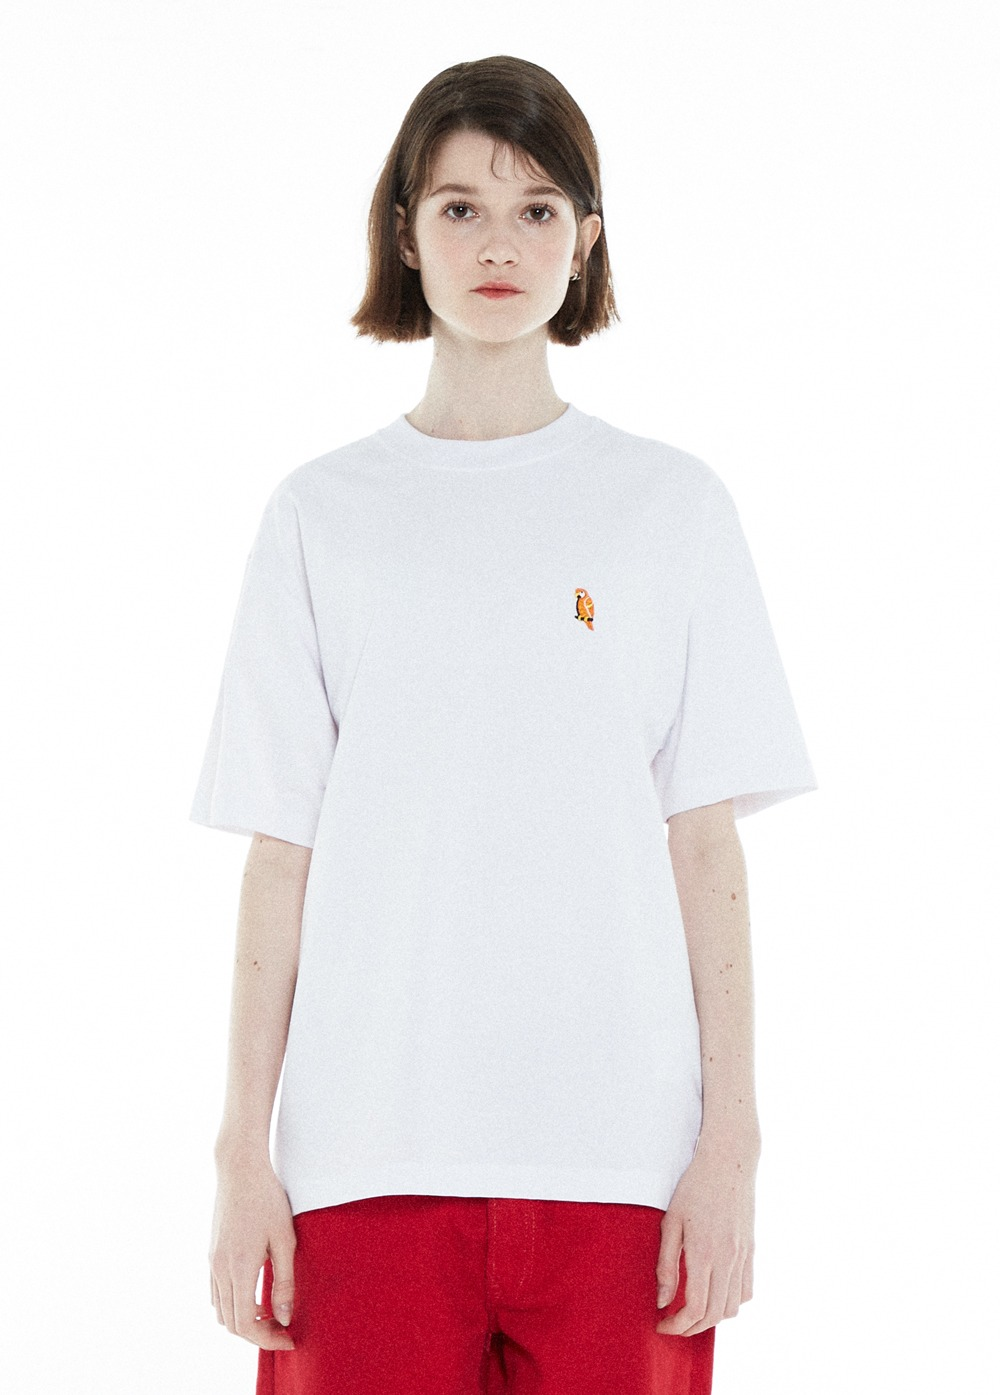 KANCO FULL LOGO TEE white